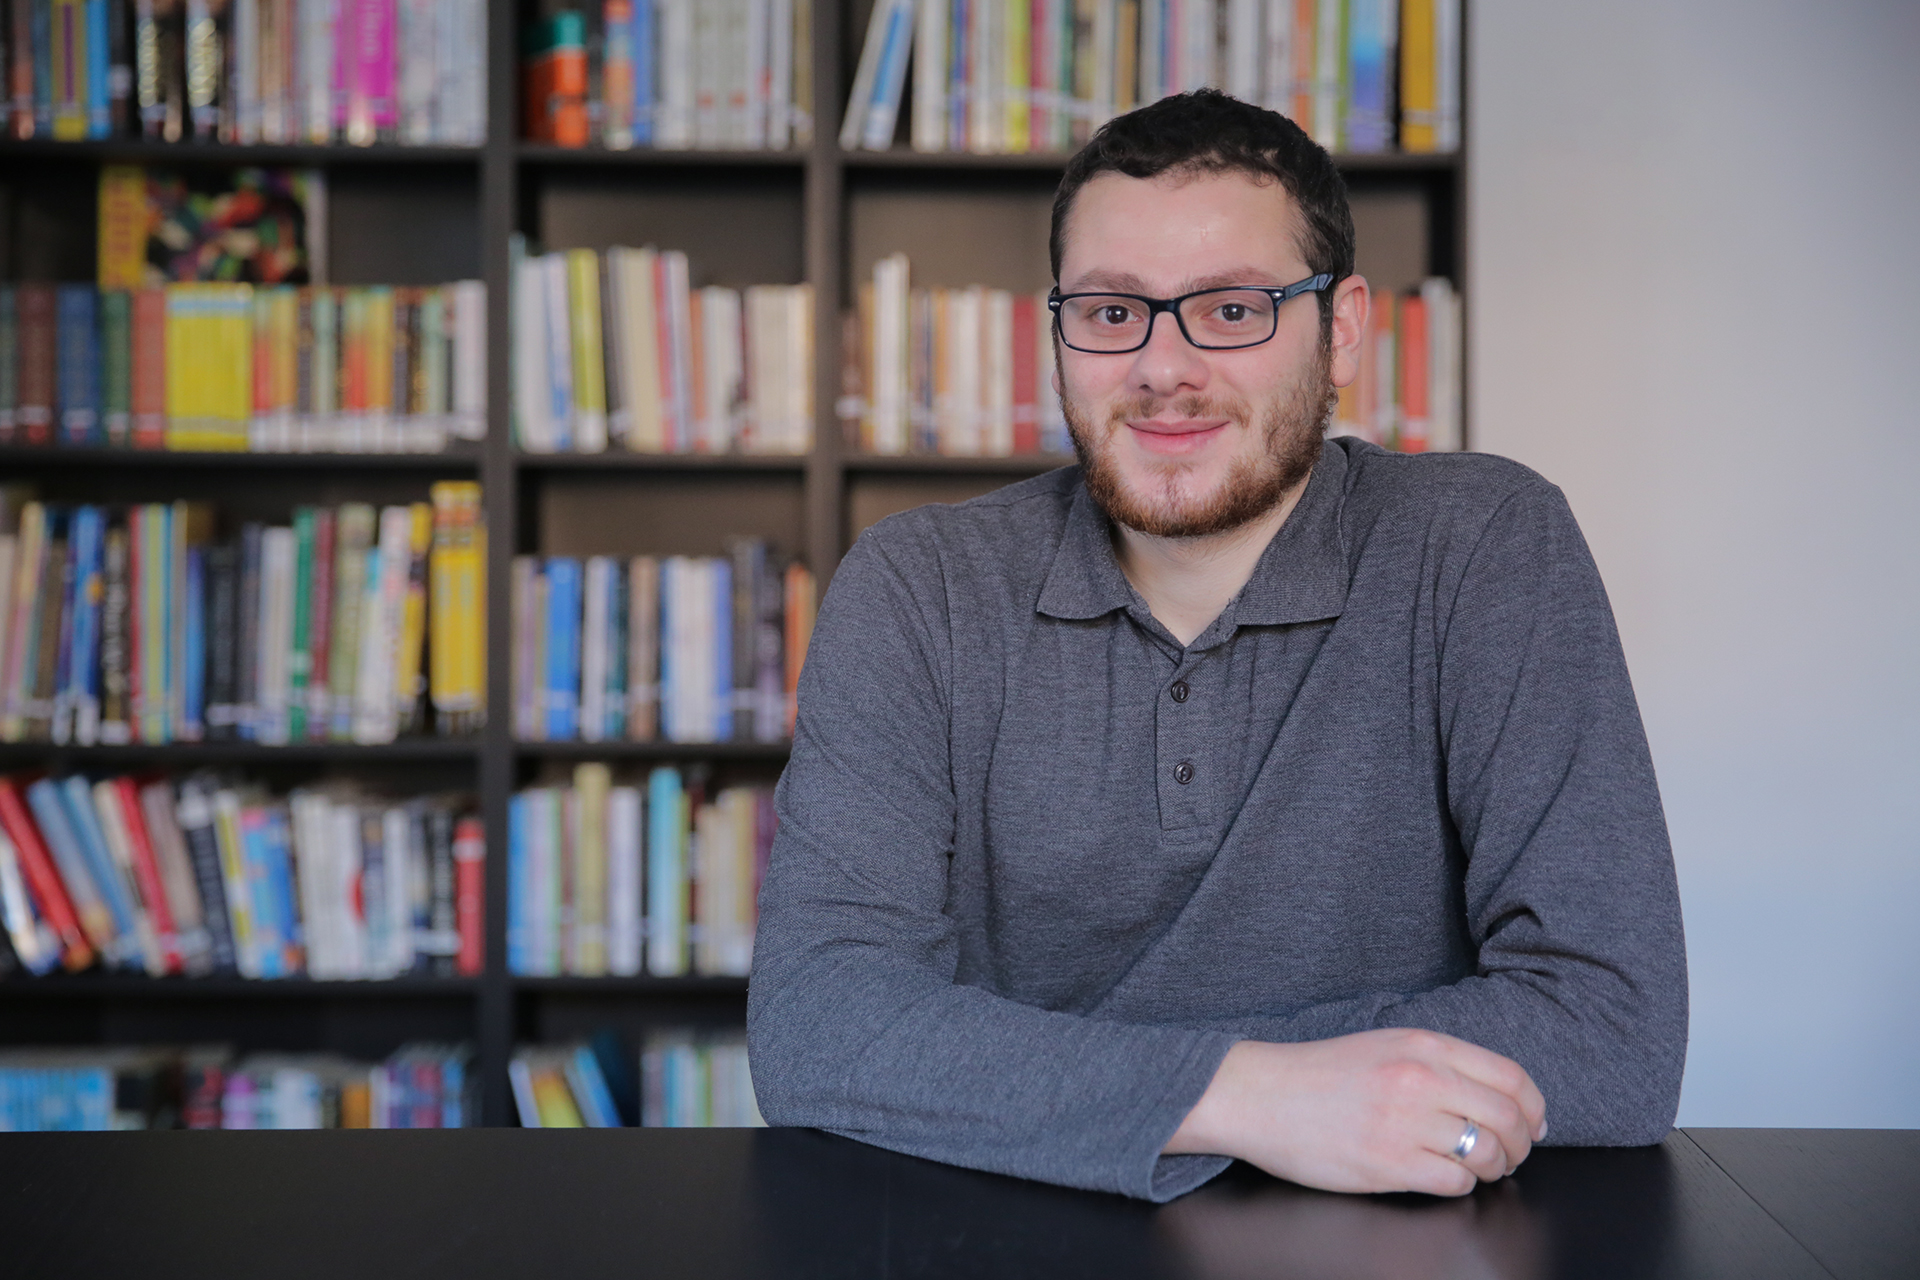 Ahmad Habbush is a Syrian-Turkish public servant who strongly believes that education plays a key role in rebuilding Syria. His journey in higher education began in 2014 when he left Syria and started building up his qualifications to get his dream scholarship. In 2017, he passed the TOEFL and the IELTS tests- - securing offers from many prestigious universities in the United Kingdom including the Chevening scholarship, one of the most competitive scholarships offered for international students. Ahmad obtained his master's degree in public management (with a specific focus on health and social care) from the University of Birmingham. He originally trained in dentistry and gained two years of practice experience in Community Health Programs in Syria and Turkey. In his recent career roles, he has focused on empowering local communities, community capacity building, improving health and social care, and other public services development. When not working, Ahmad will indulge in psychology lectures, Turkish lessons or community health articles.